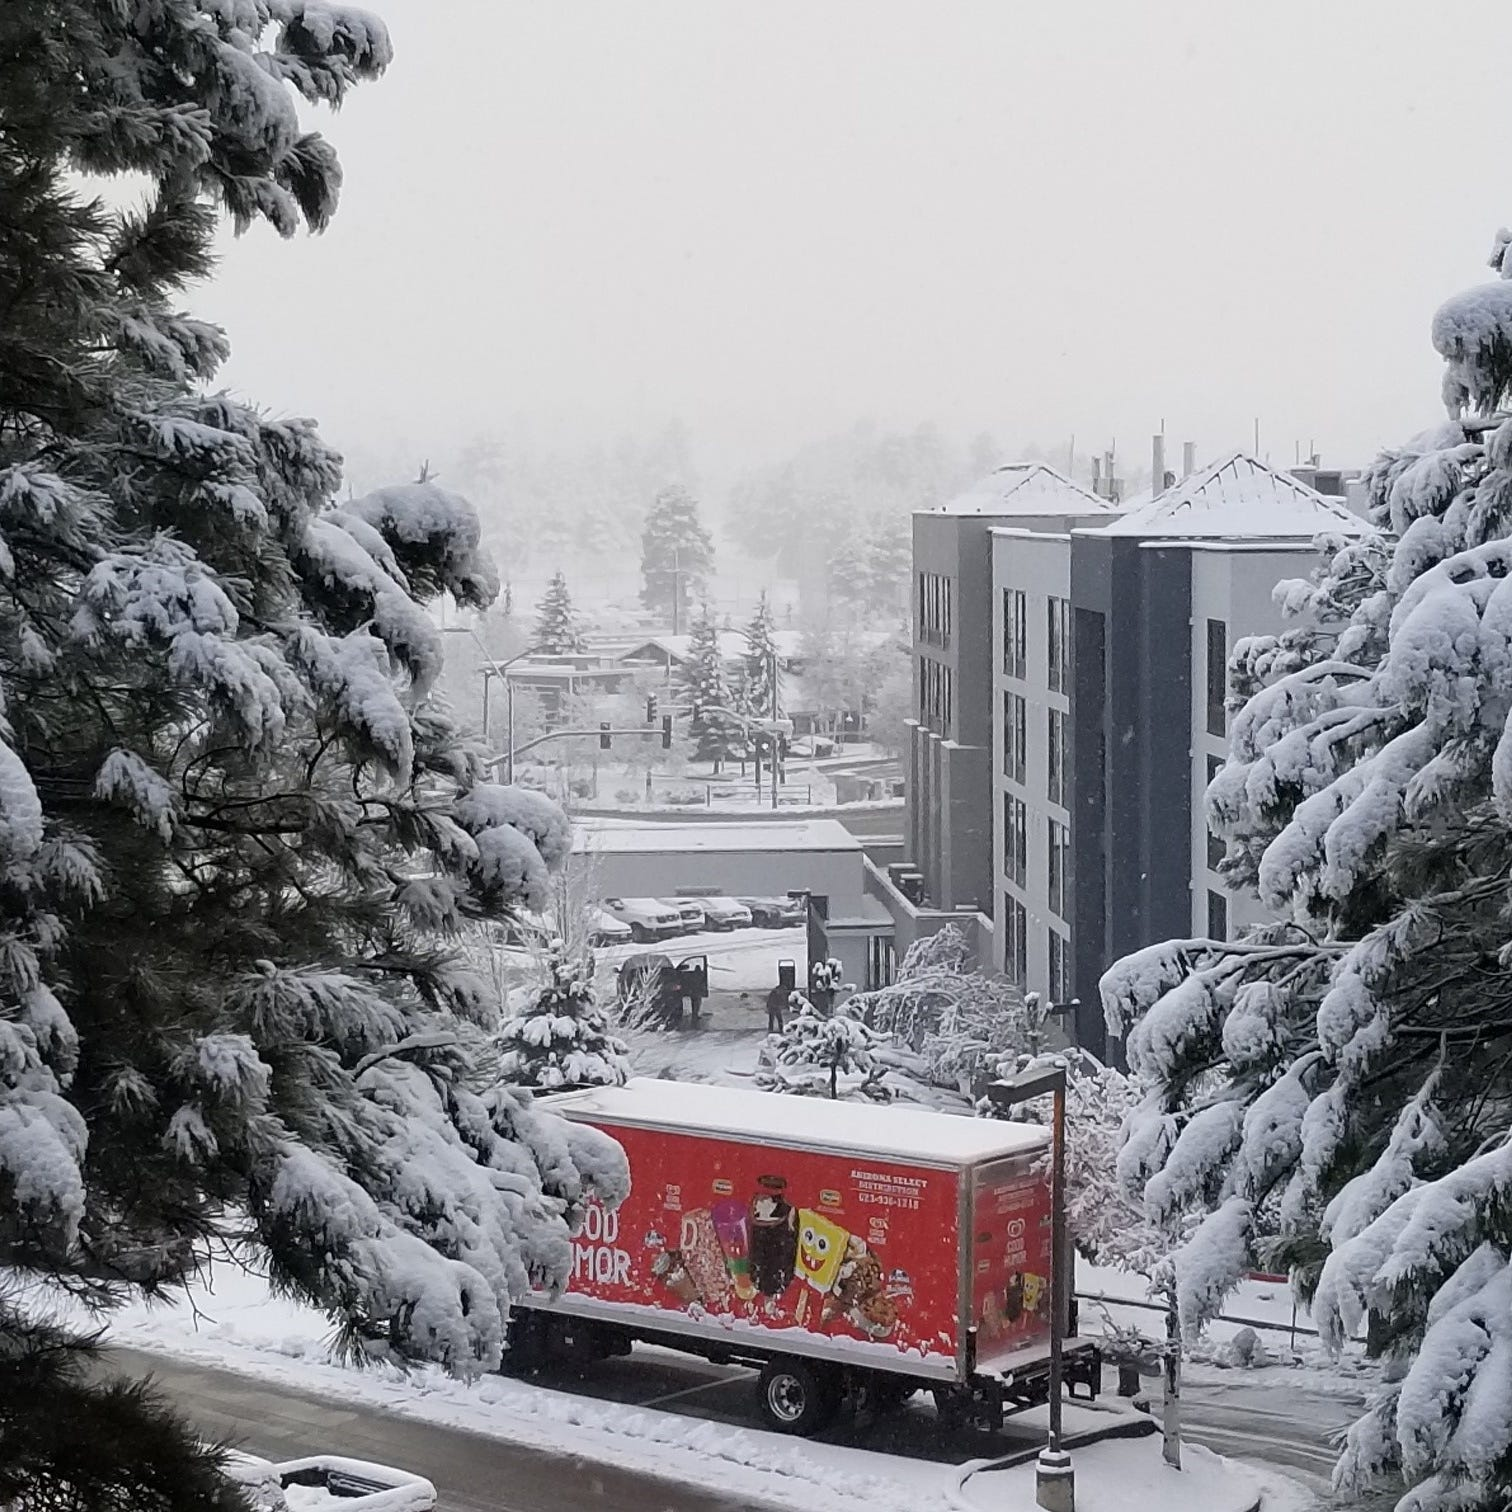 Northern Arizona to see greatest snowfall since 2017 later this week